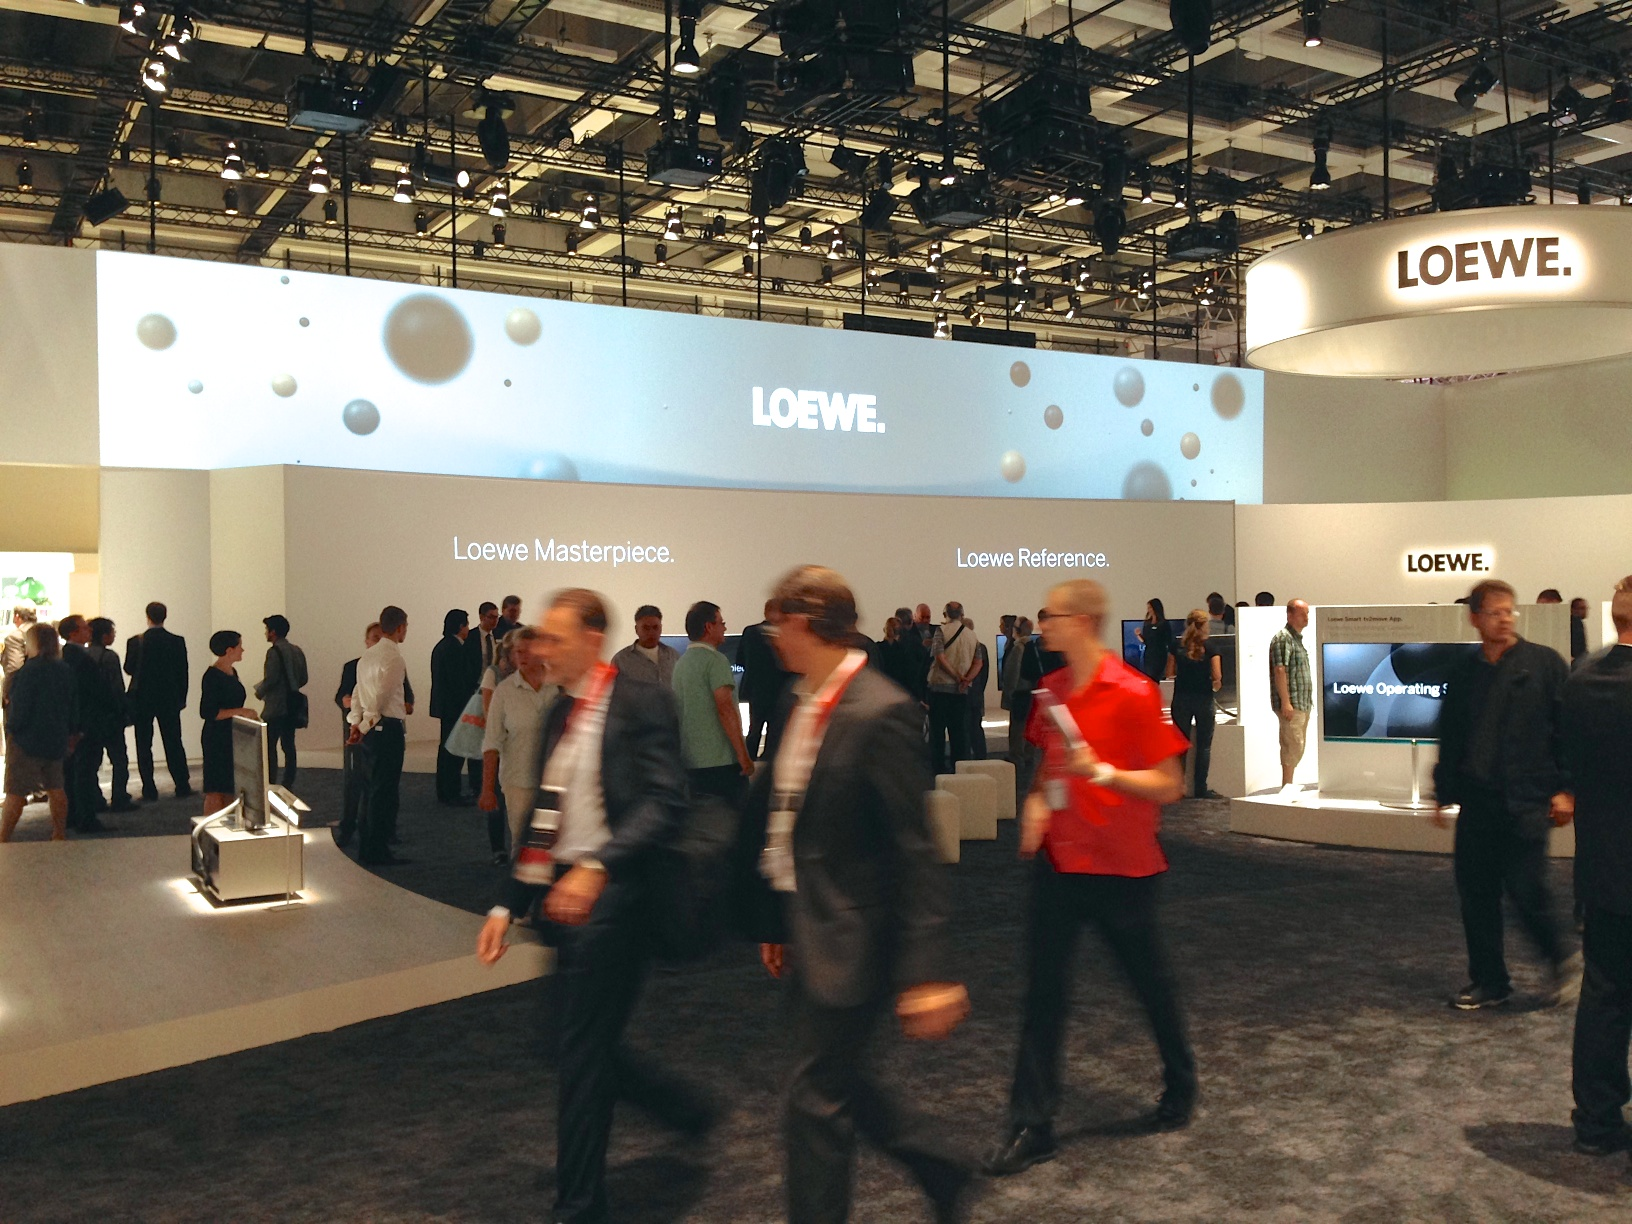 loewe messestand zur ifa berlin kopfquadrat gmbh. Black Bedroom Furniture Sets. Home Design Ideas